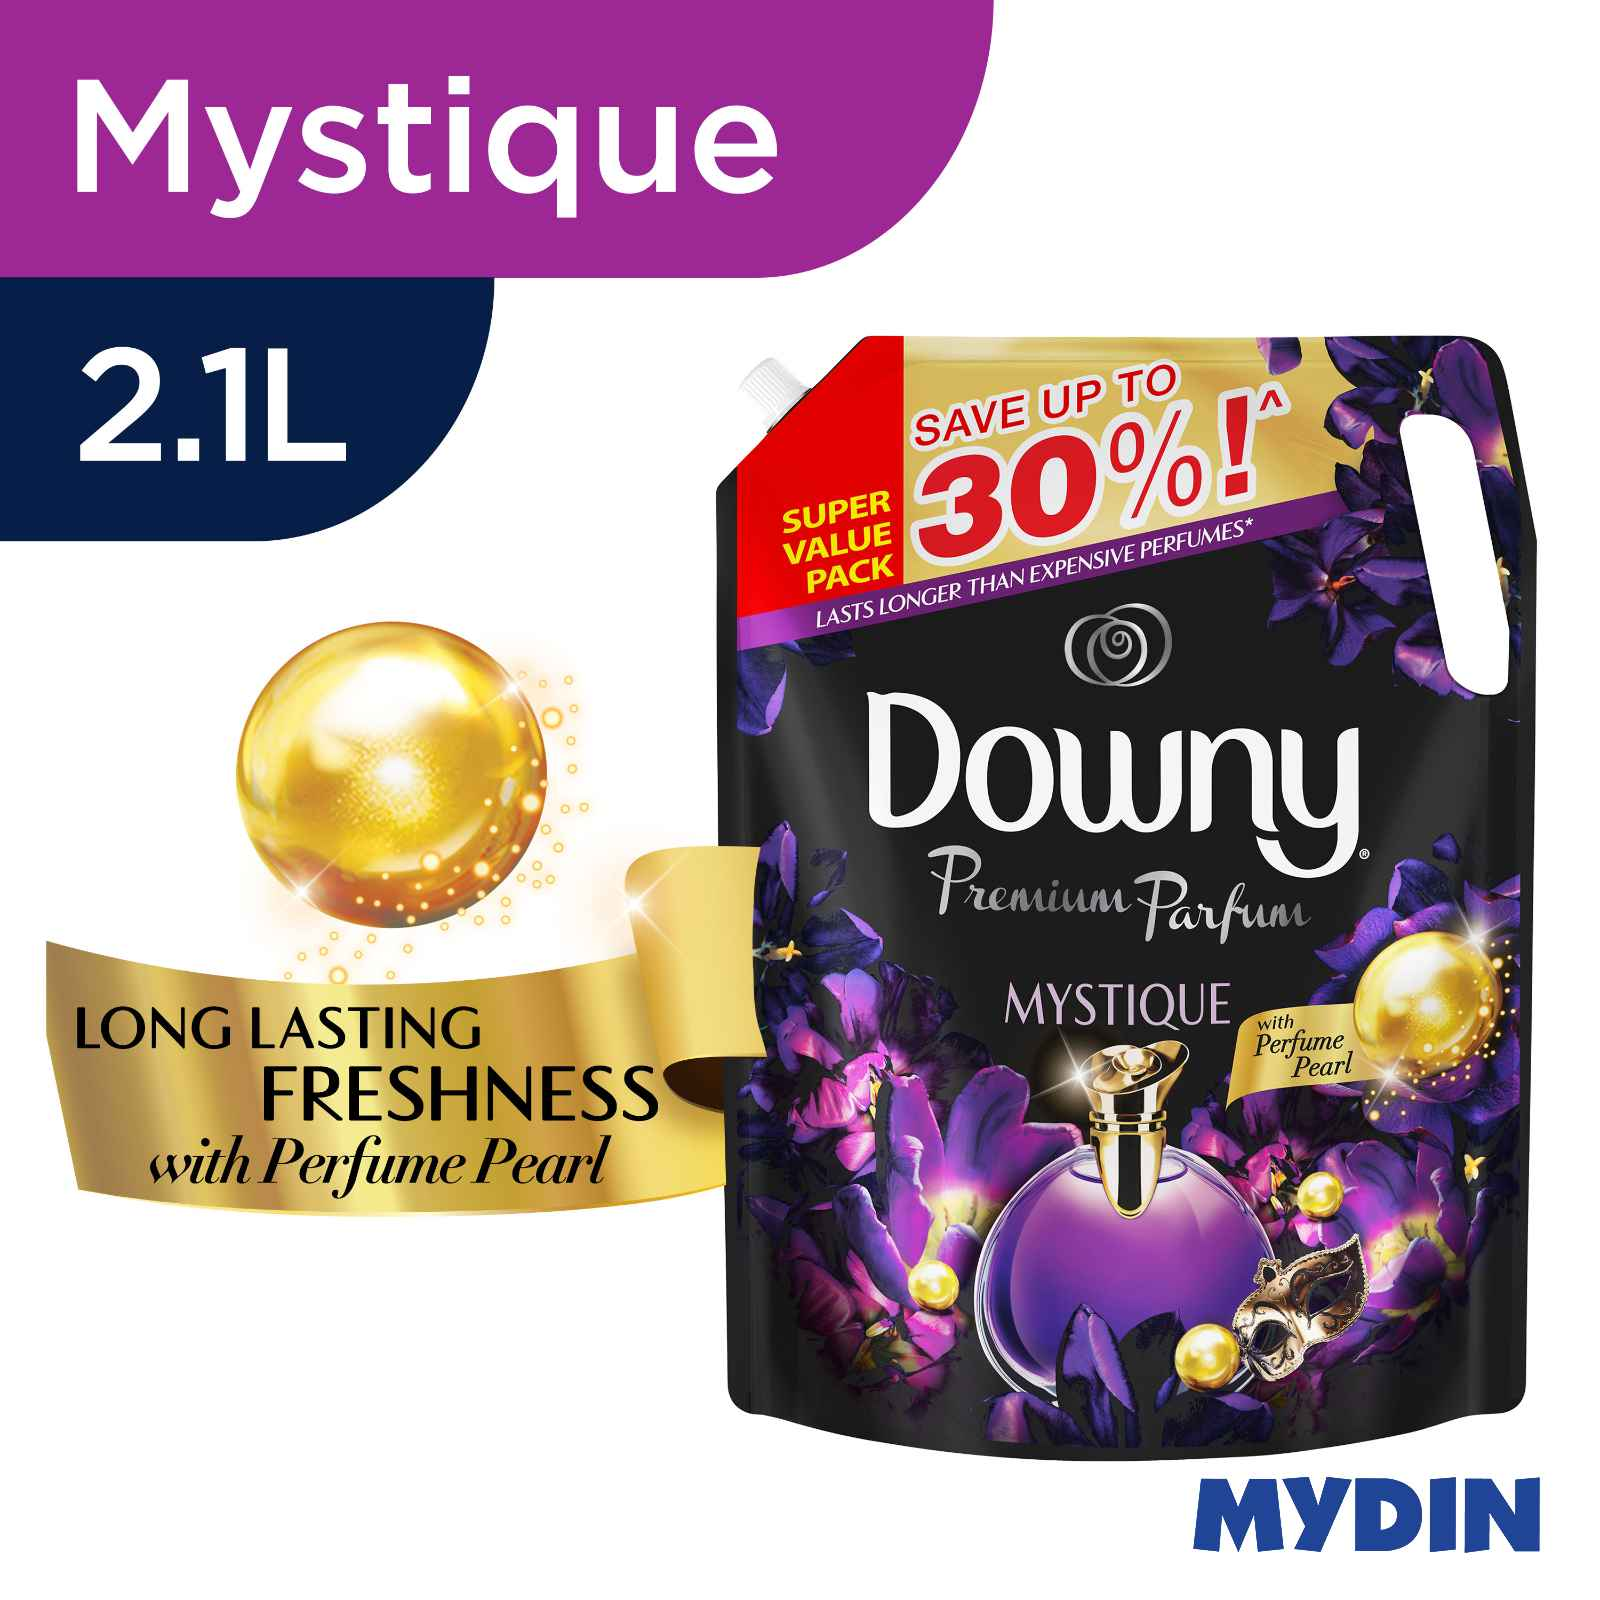 Downy Concentrated Fabric Softener Refill Mystique (2.1L)